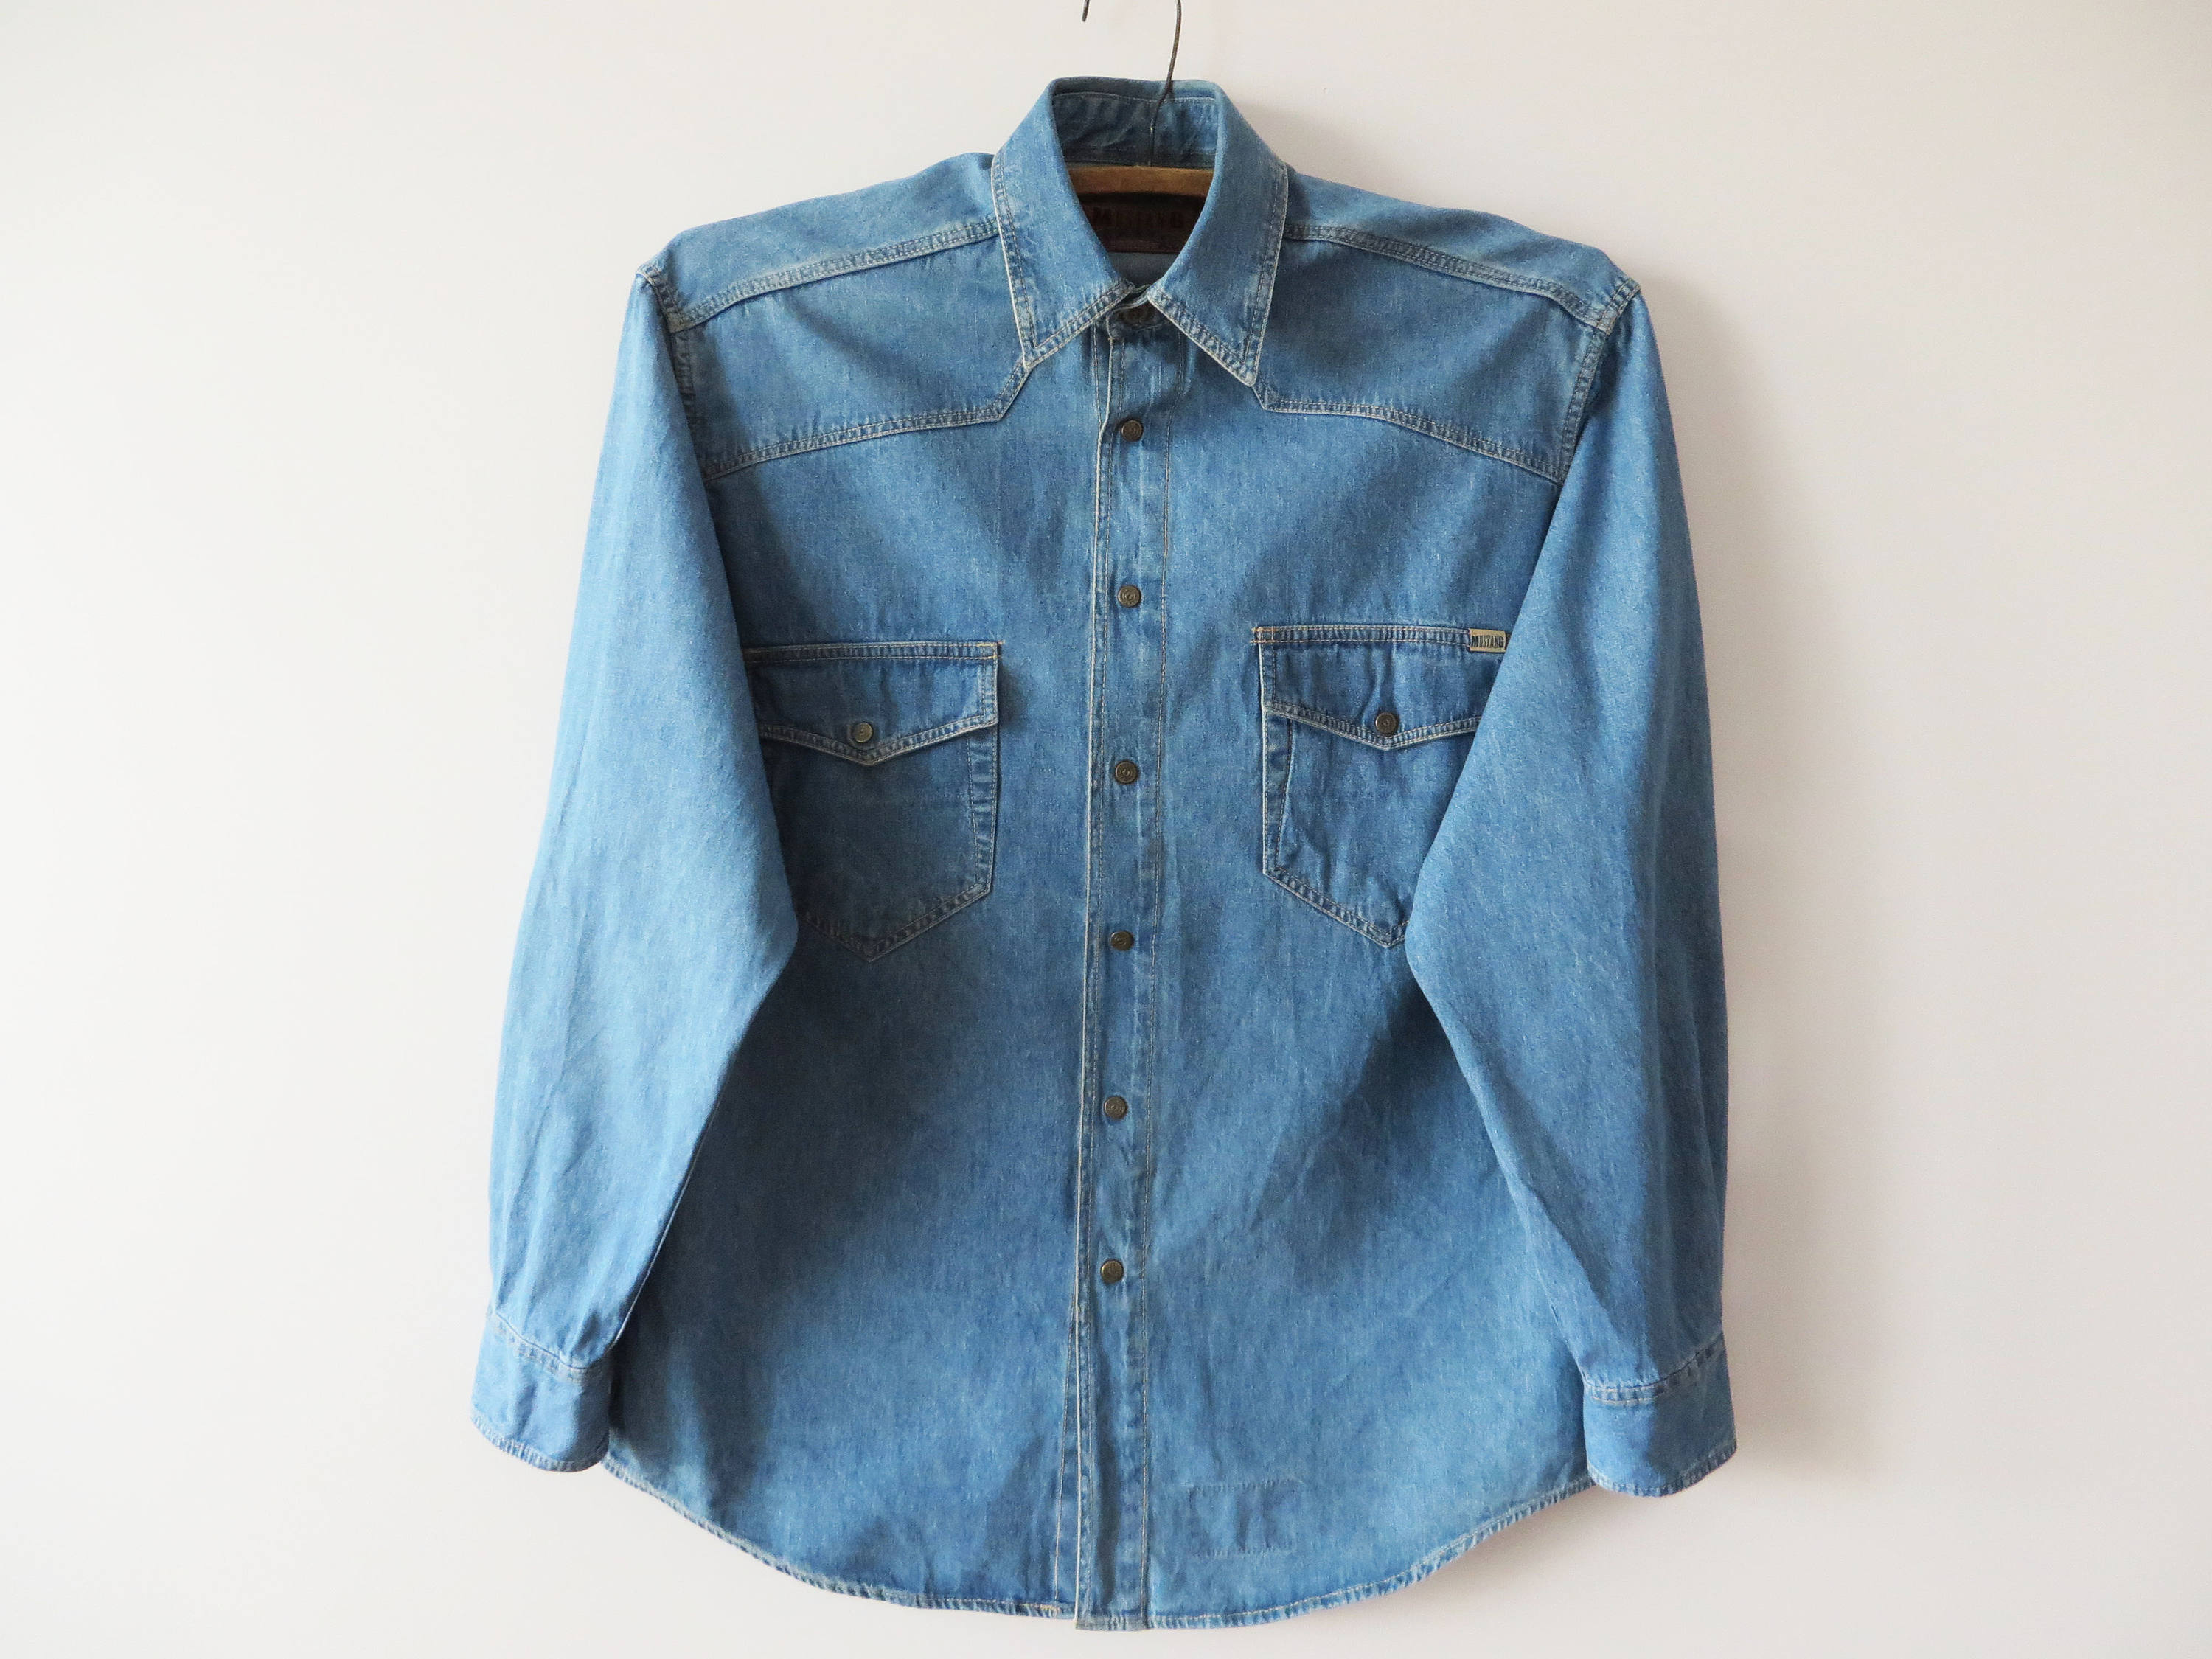 0dd880d5e4 Men s Denim Shirt Mustang Jeans Shirt Long Sleeve Shirt